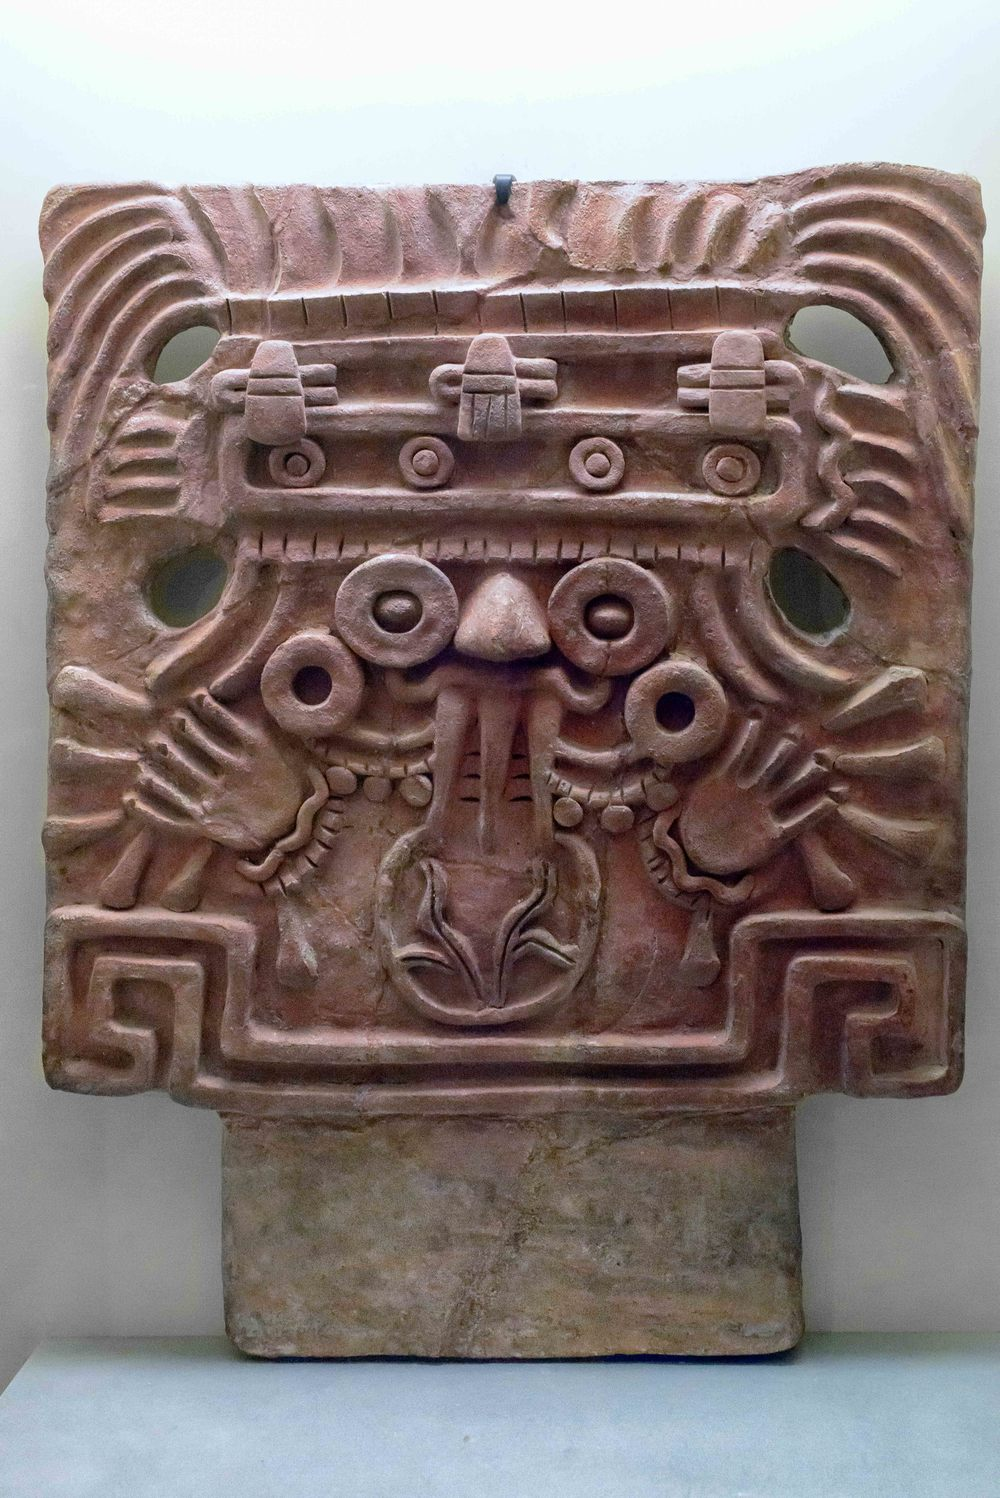 Merlon with Tlaloc Face. The god of rain and of time, Tlaloc is associated with the sun through his symbols, such as the trapezoid-and-ray headdress. Another such symbol is the nymphaea flower, commonly (and incorrectly) called water lily, in the mouth of the deity.